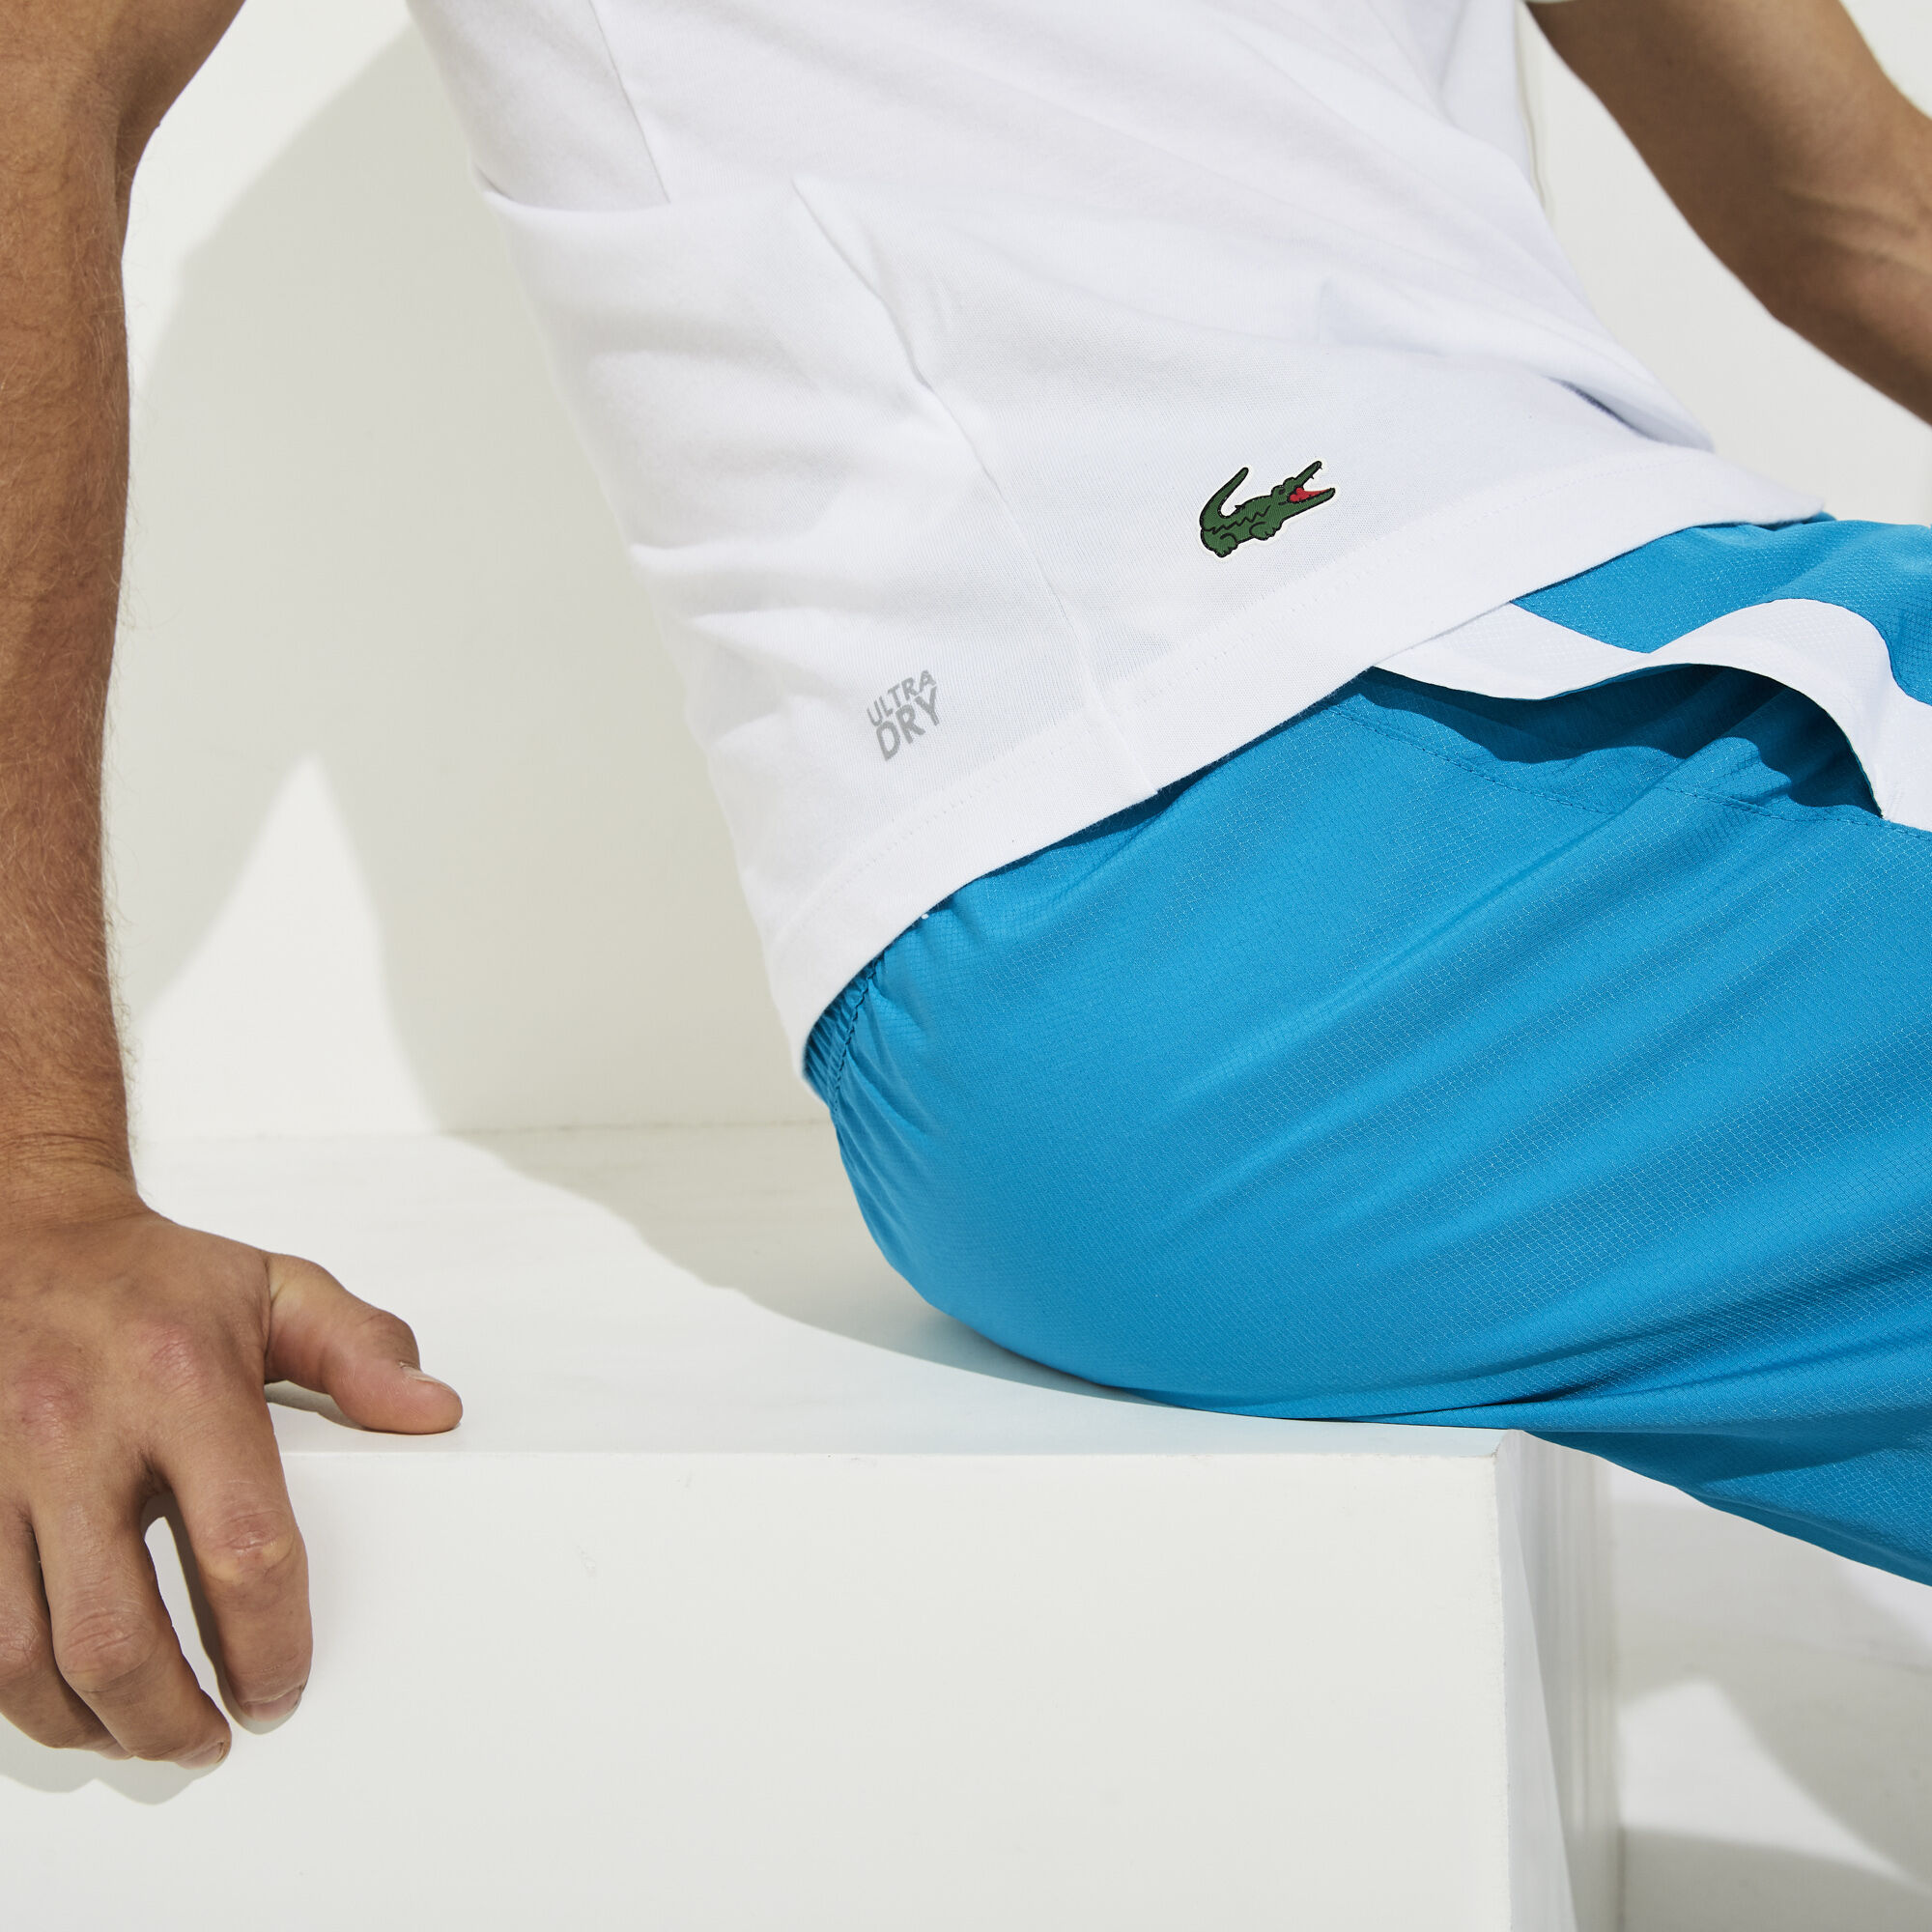 Men's Lacoste SPORT Printed Breathable T-shirt